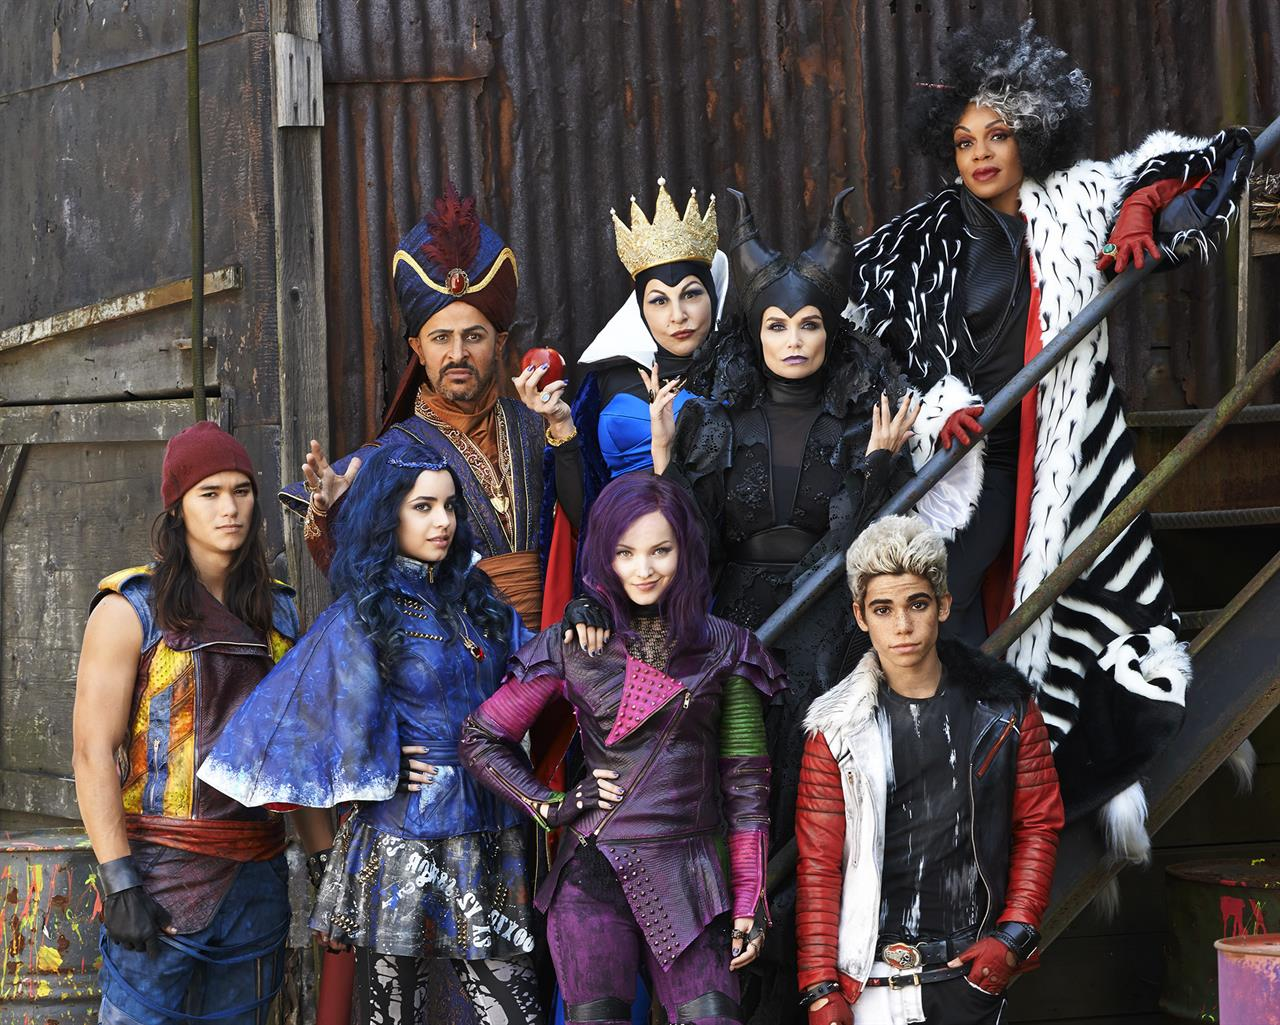 Disney to premiere 'Descendants' sequel across 5 networks